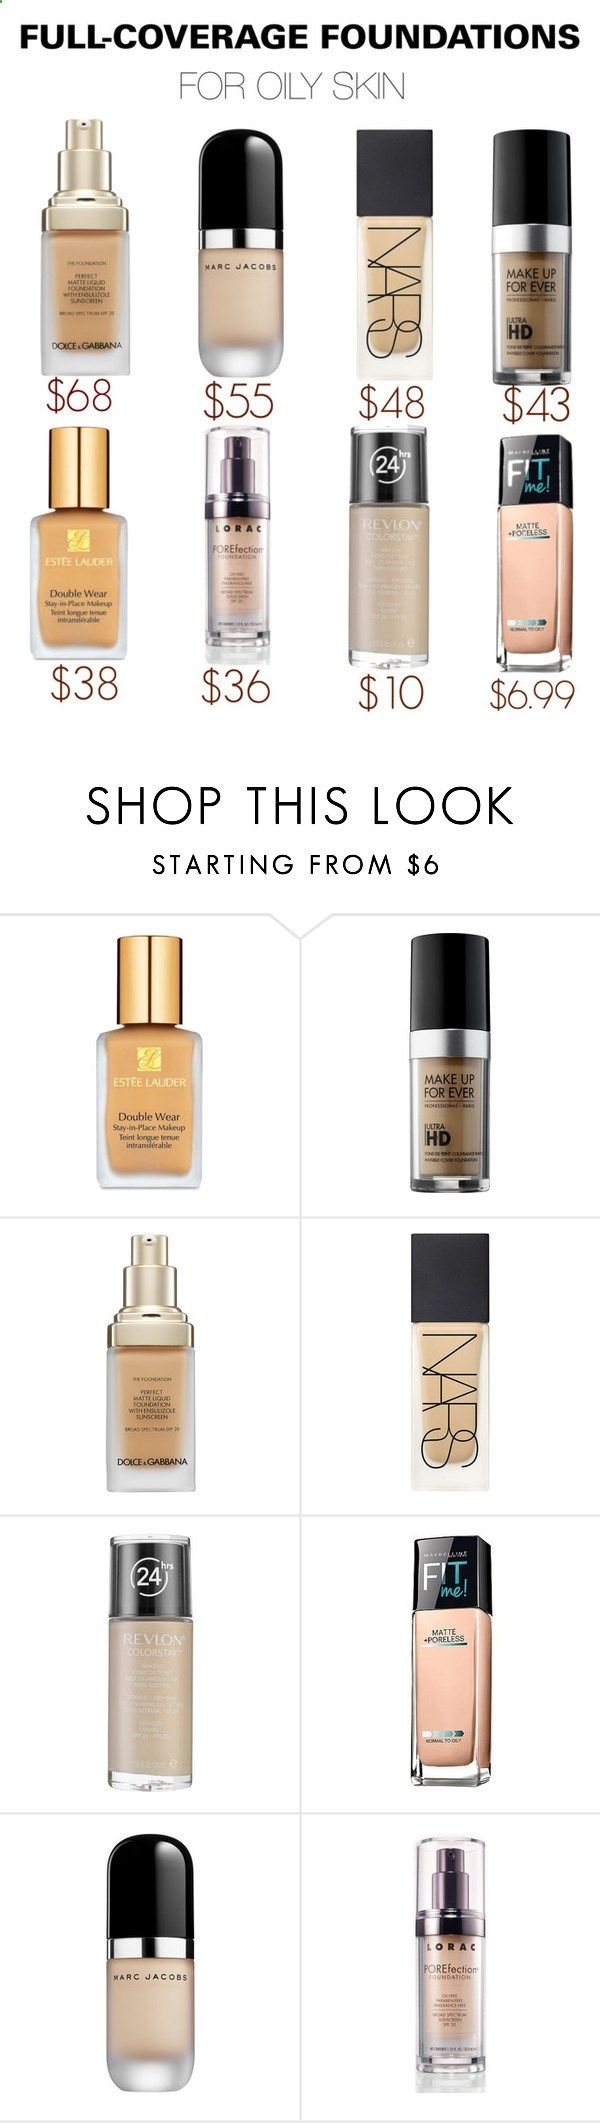 Full-coverage foundations for oily skin by sozelizabeth ❤ liked on Polyvore featuring beauty, Estée Lauder, MAKE UP FOR EVER, DolceGabbana, NARS Cosmetics, Revlon, Maybelline, Marc Jacobs and LORAC